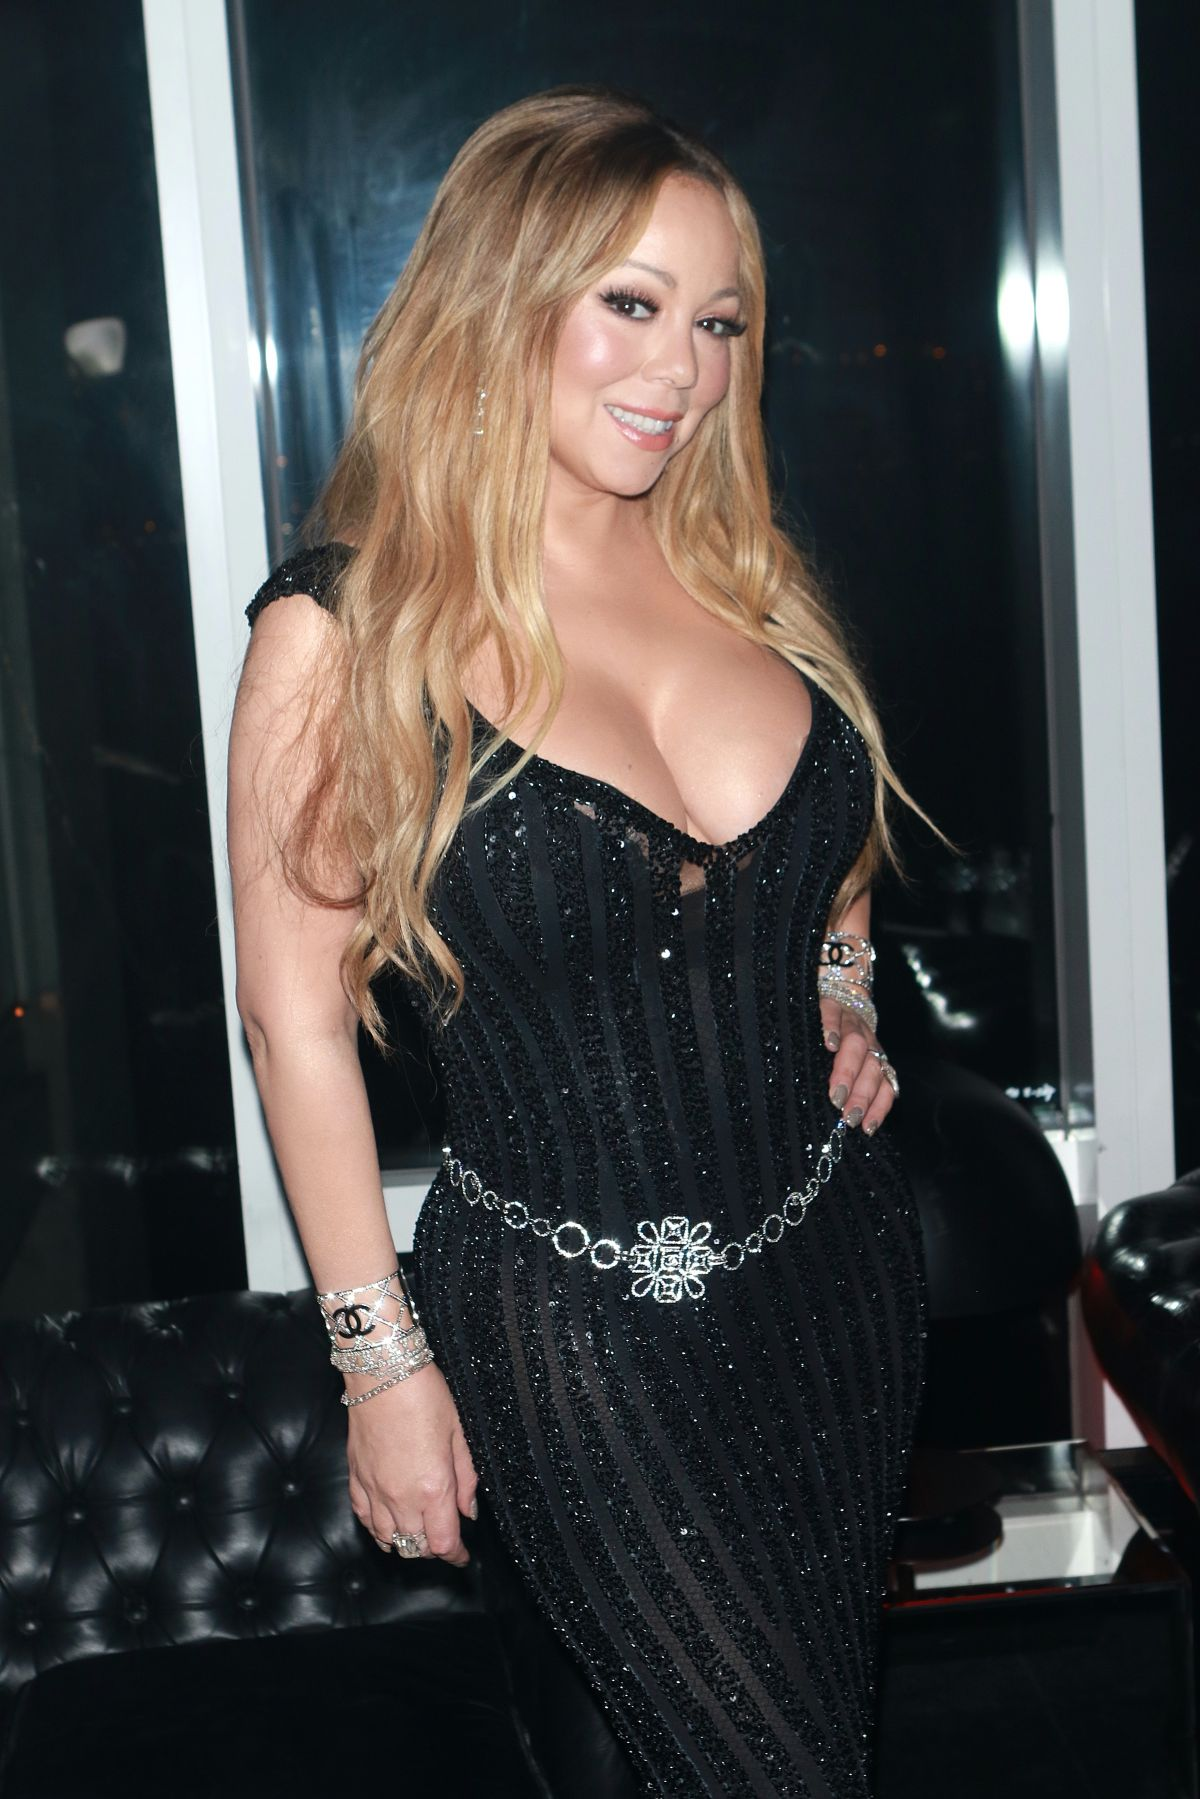 Mariah Carey Attends V Magazine honors Karl Lagerfeld after party at Le Bain in New York City